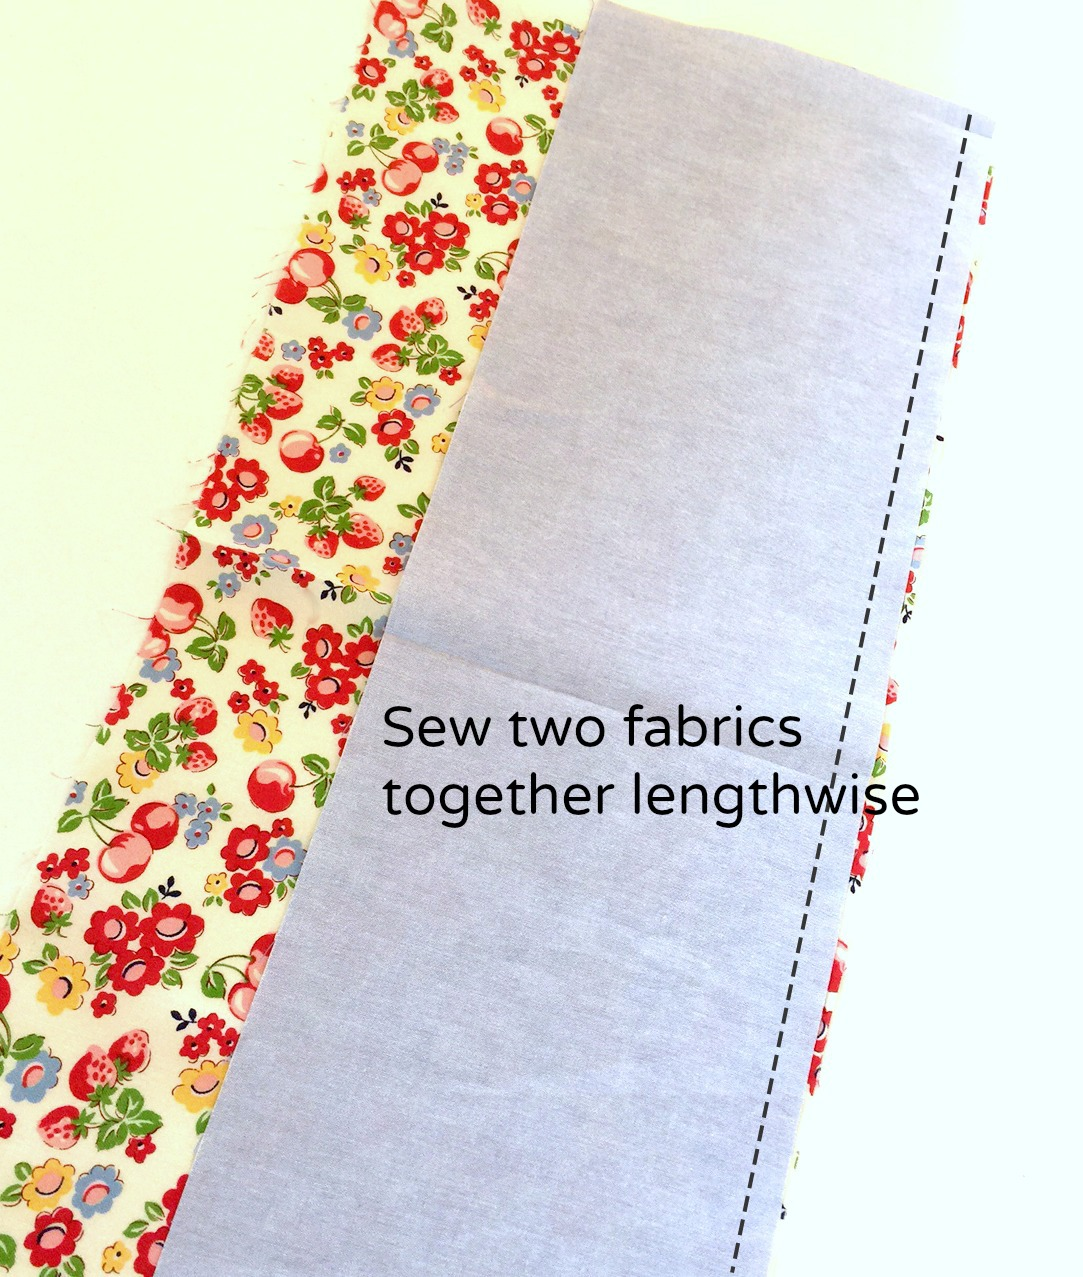 sew fabrics together